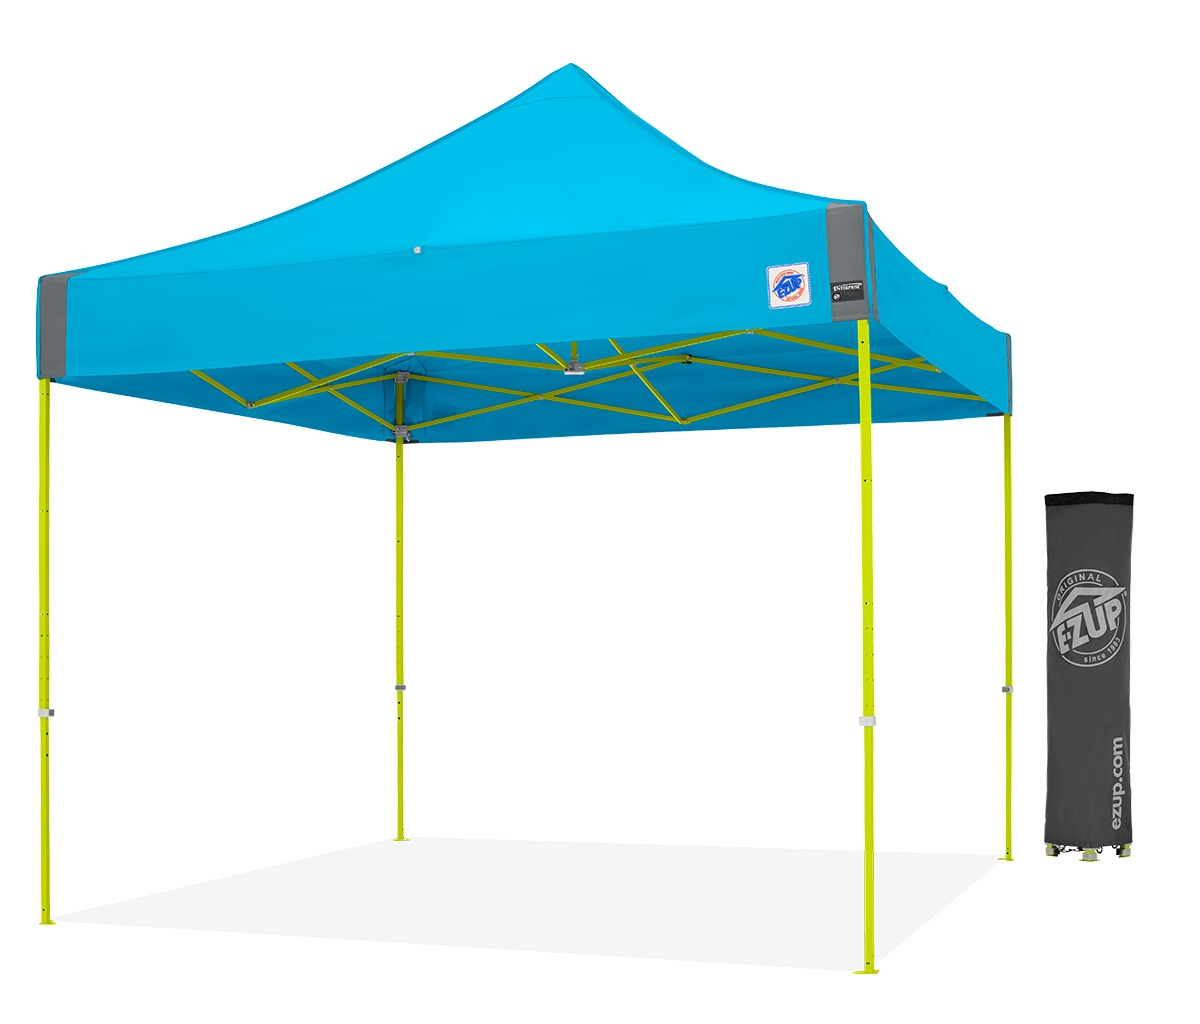 E-Z UP® Enterprise Canopy Shelter 10u0027 X 10u0027  sc 1 st  Sports Facilities Group Inc. & E-Z UP Enterprise Canopy Shelter 10u0027 X 10u0027. Sports Facilities Group Inc.